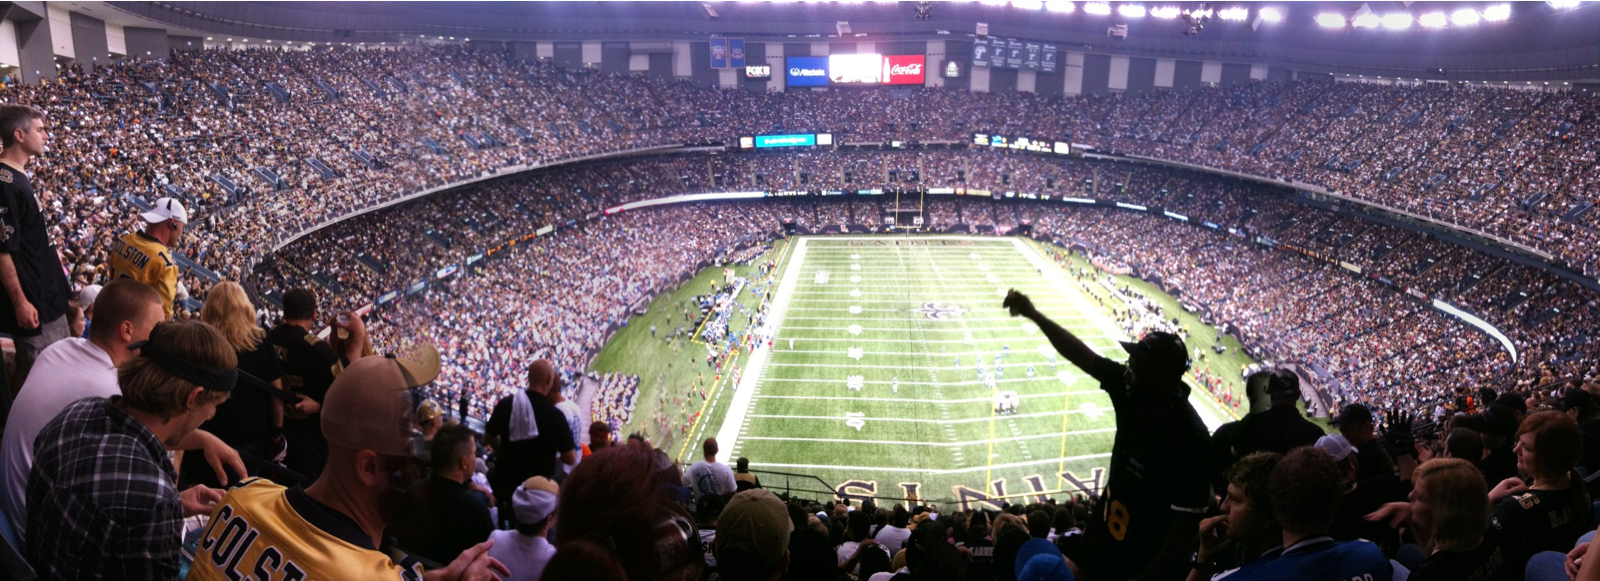 mercedes-benz superdome | american football wiki | fandom powered